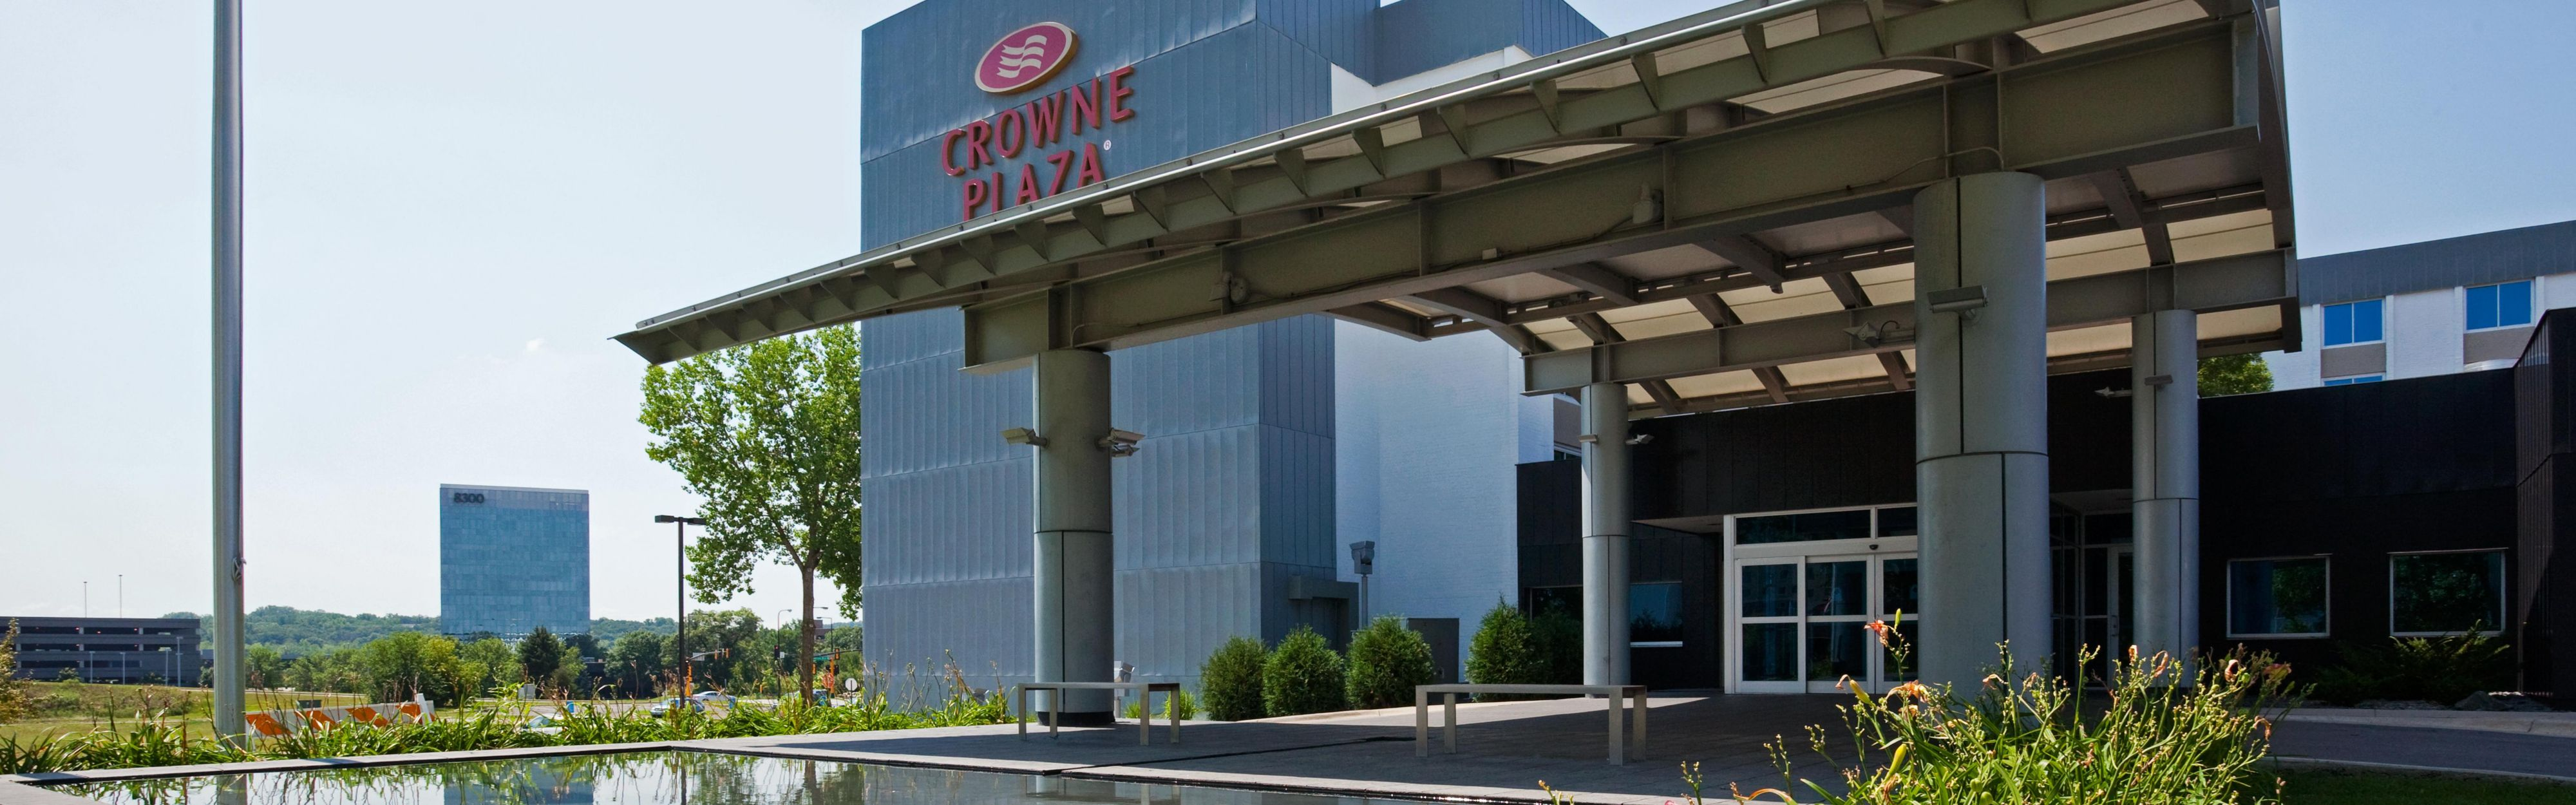 Crowne Plaza Hotel Bloomington Msp Airport Moa